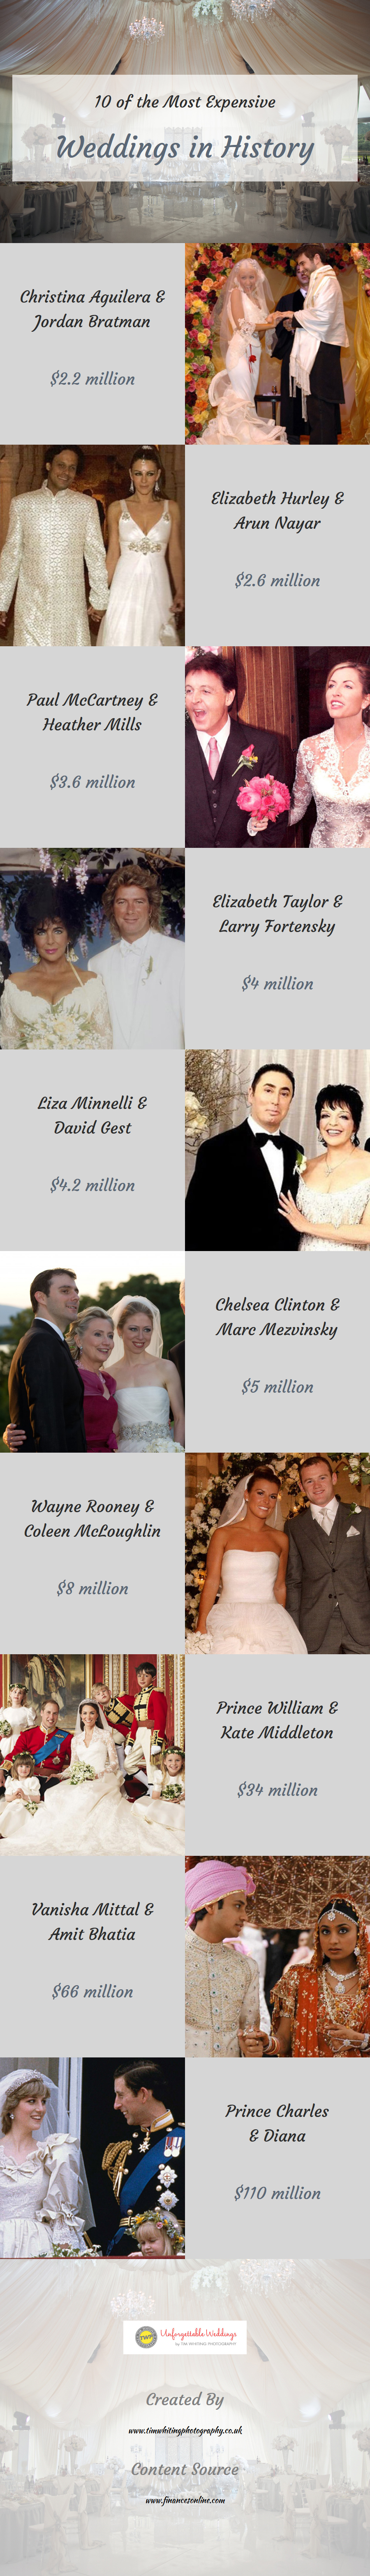 10 of the Most Expensive Weddings in History.jpg